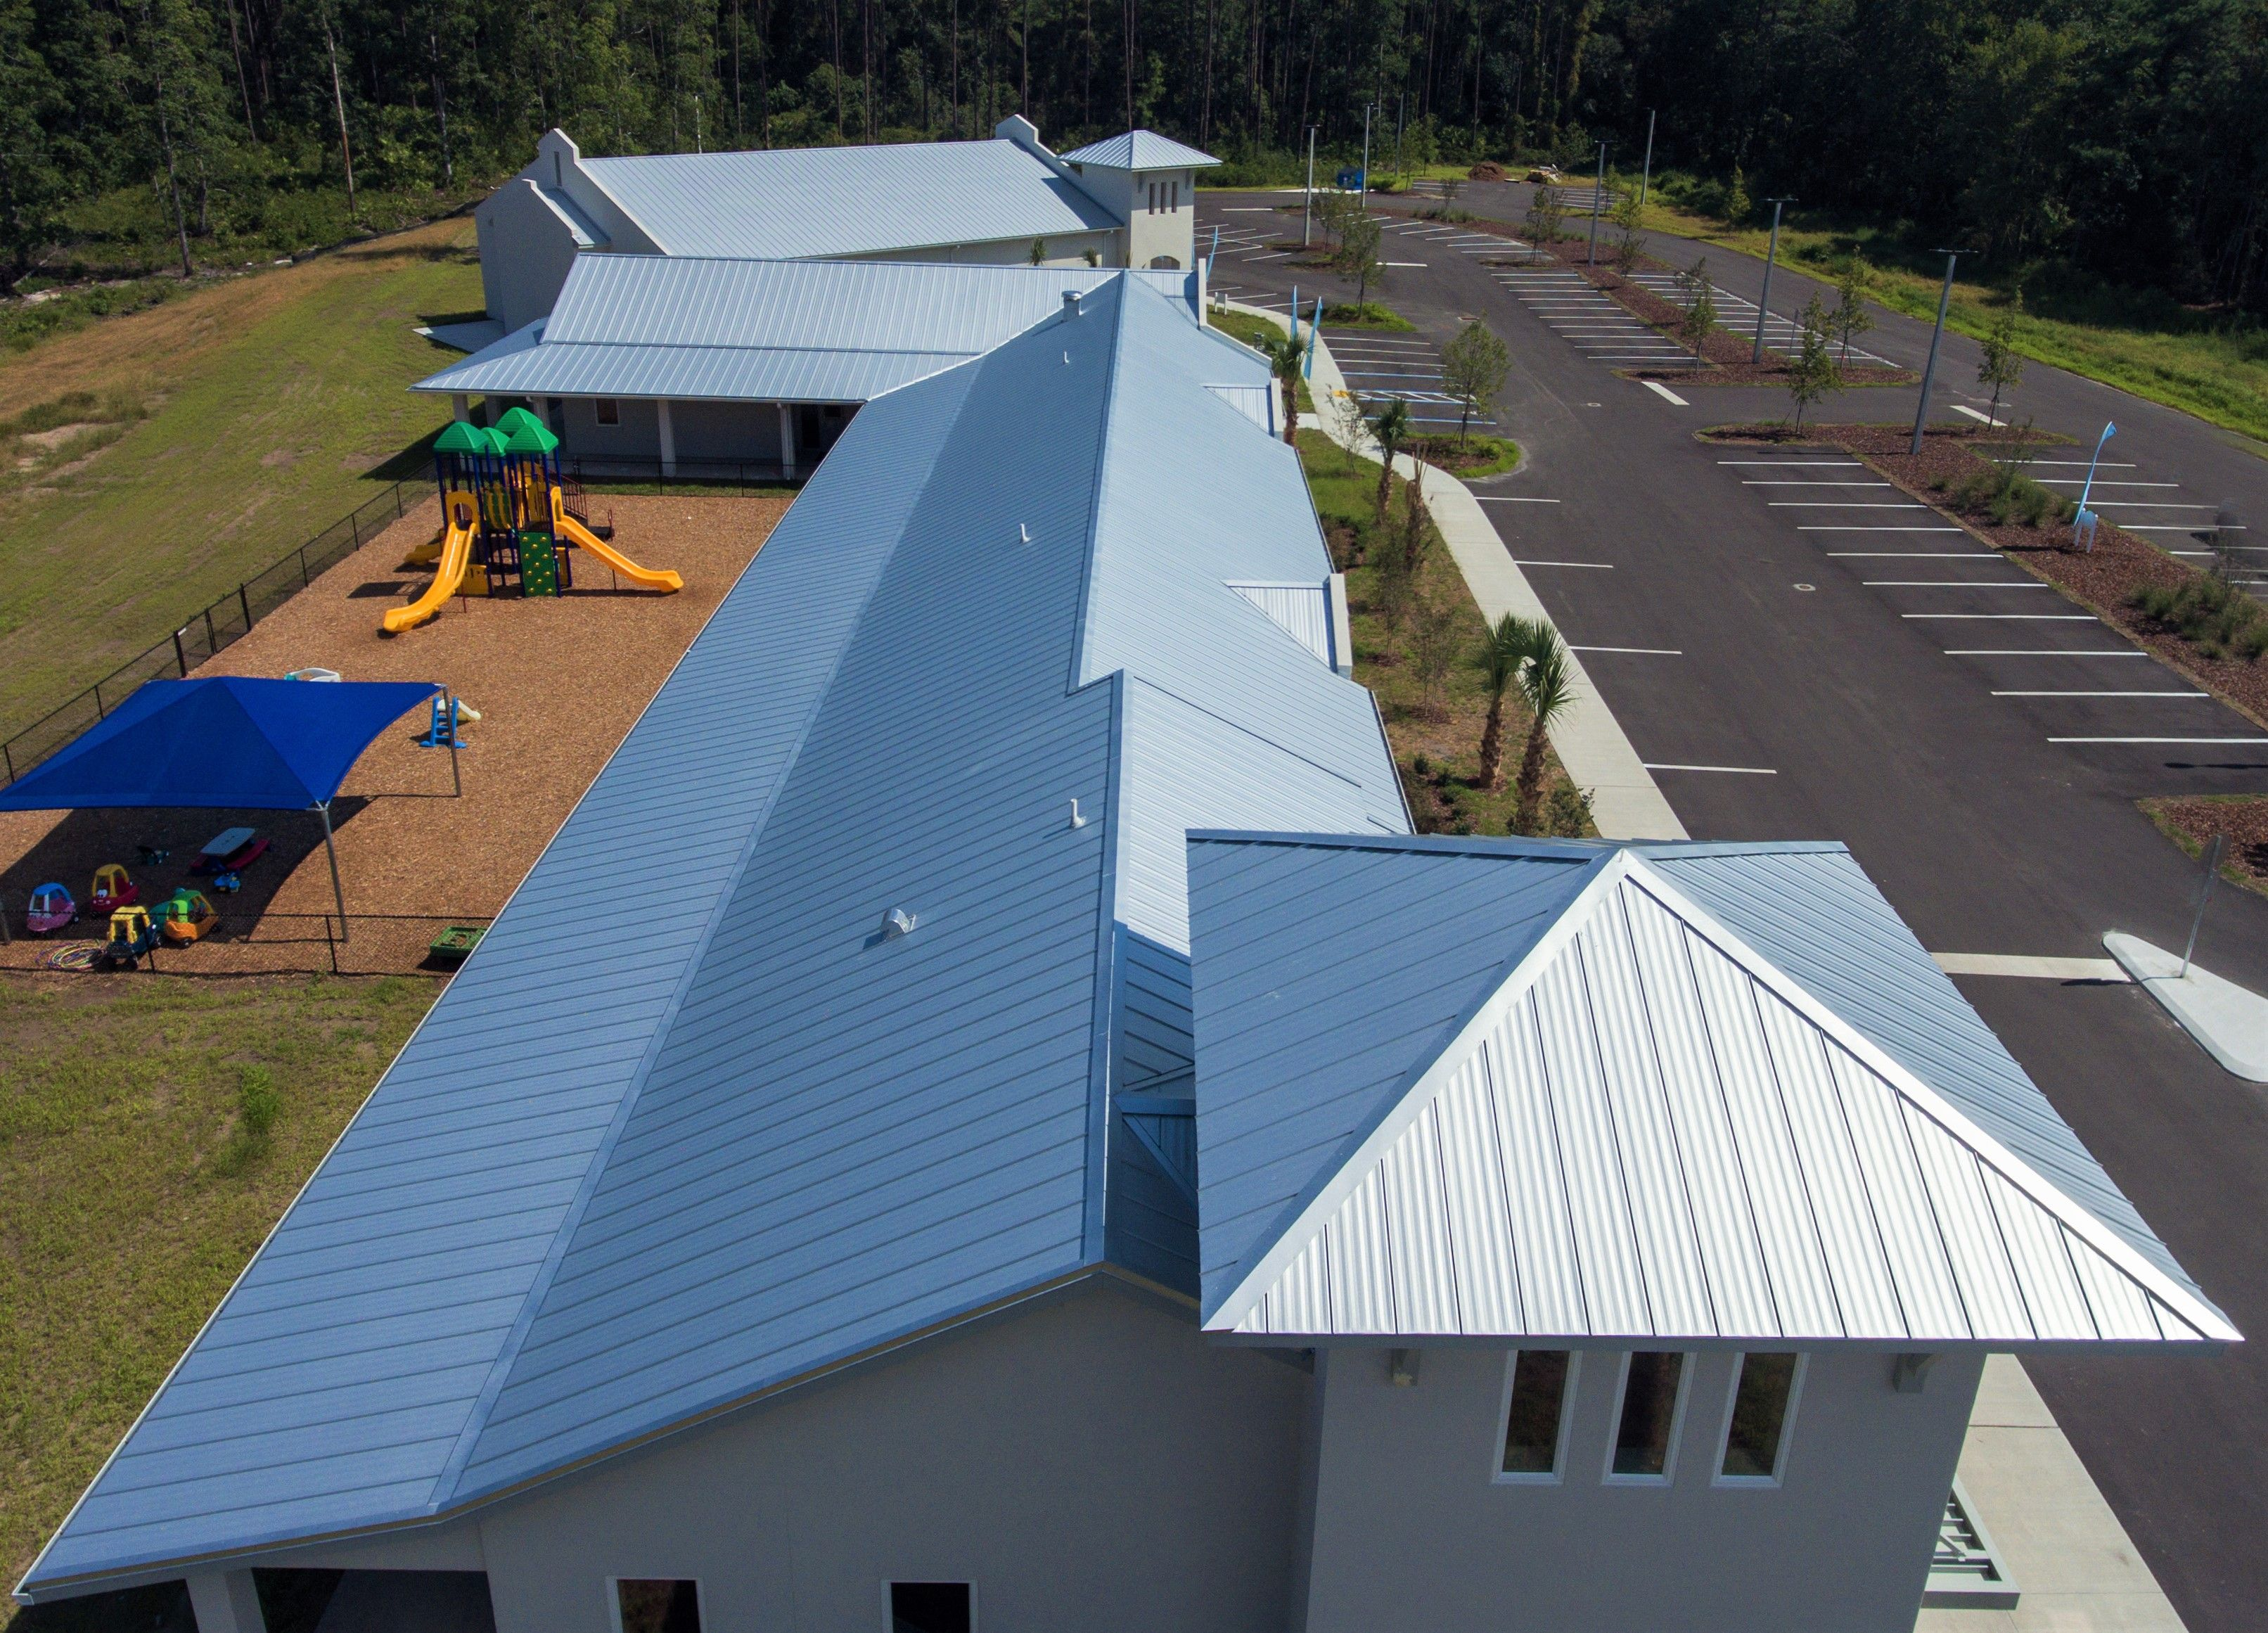 Commercial Roof Replacement Jacksonville Fl Weatherlock Roofing Contractor In 2020 Commercial Roofing Roofing Contractors Roofing